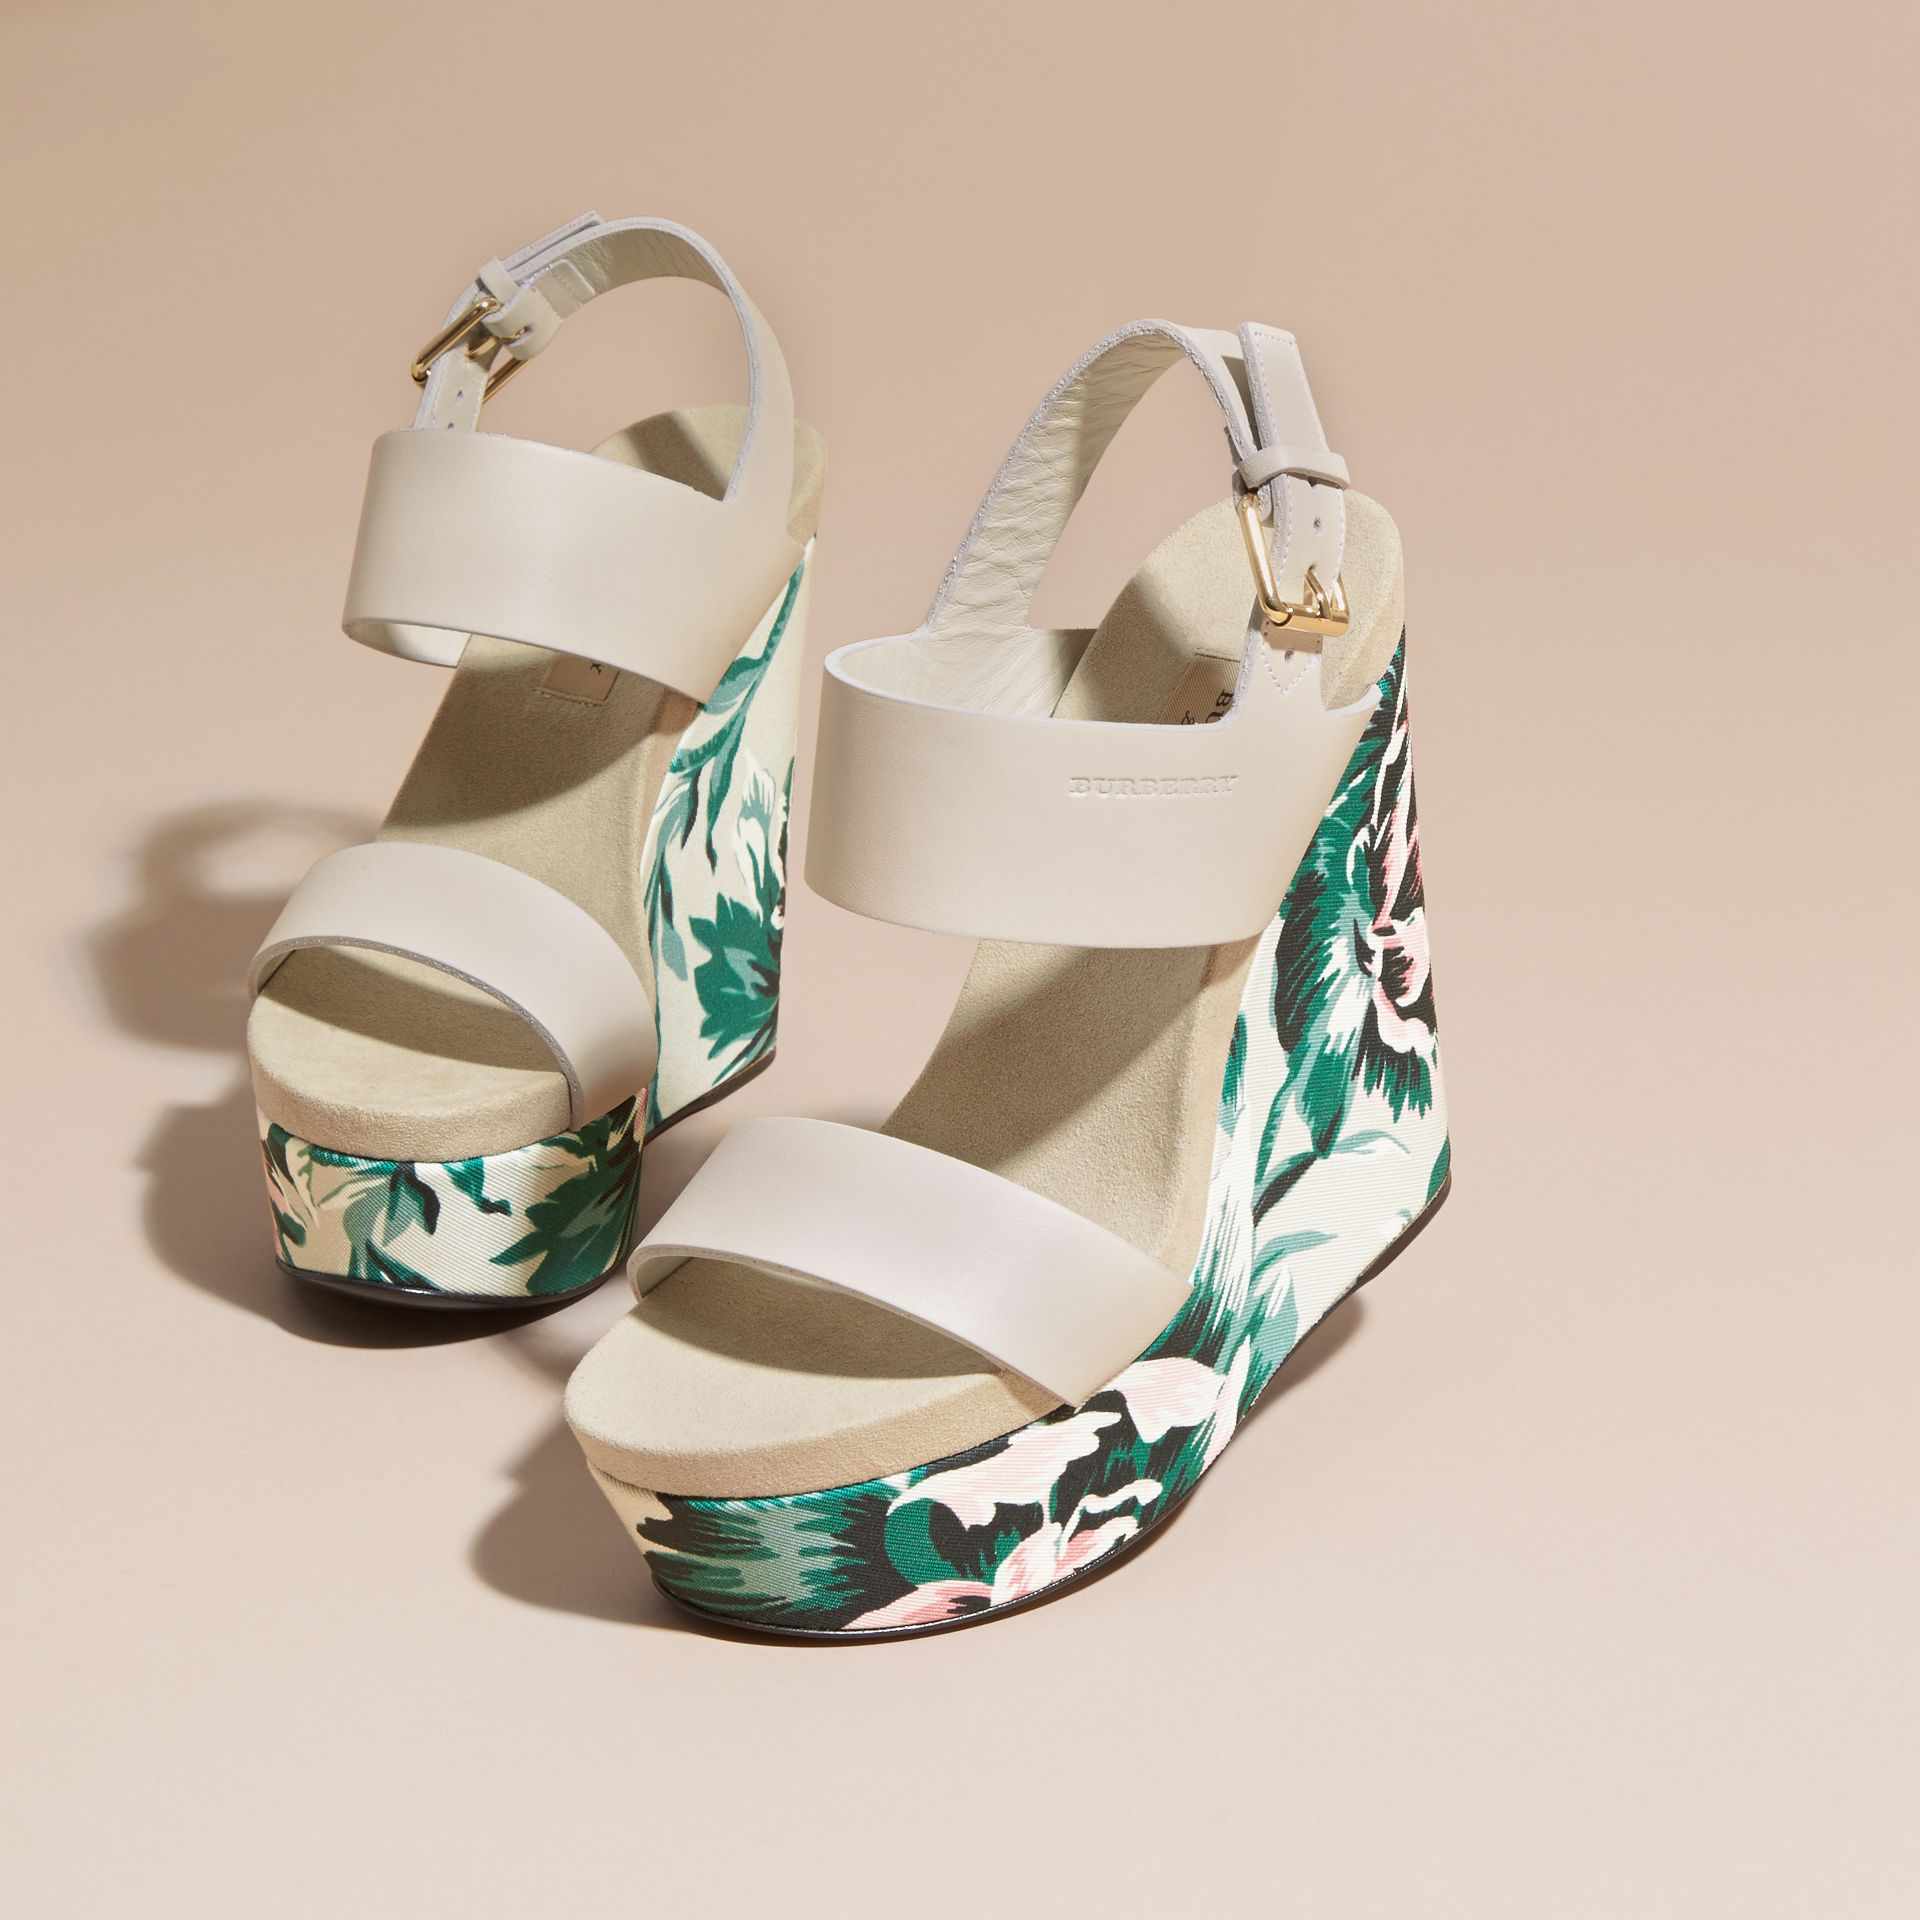 Peony Rose Print Leather Platform Wedges Emerald Green - gallery image 3